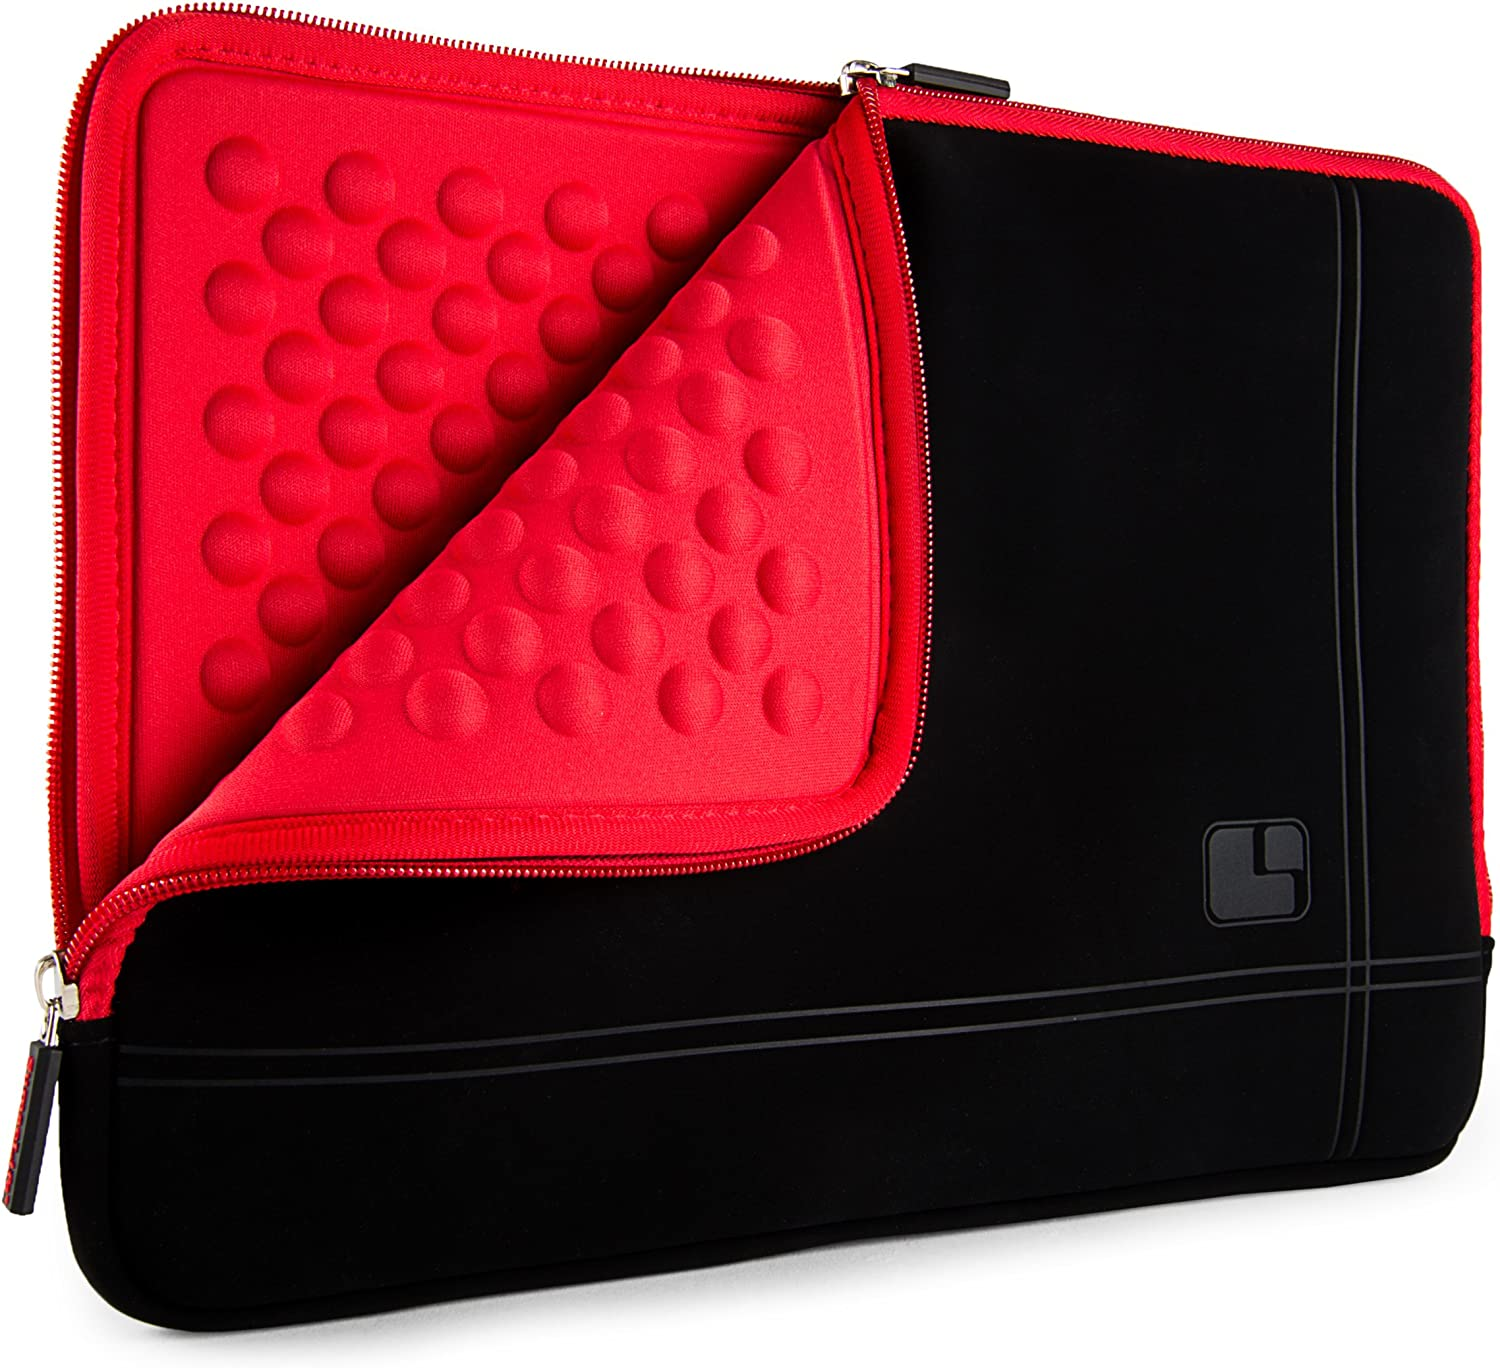 SumacLife 15.6inch Shock Absorbing Red Laptop Sleeve Suitable Dell Inspiron, Latitude, Precision, Vostro, XPS, G3 15